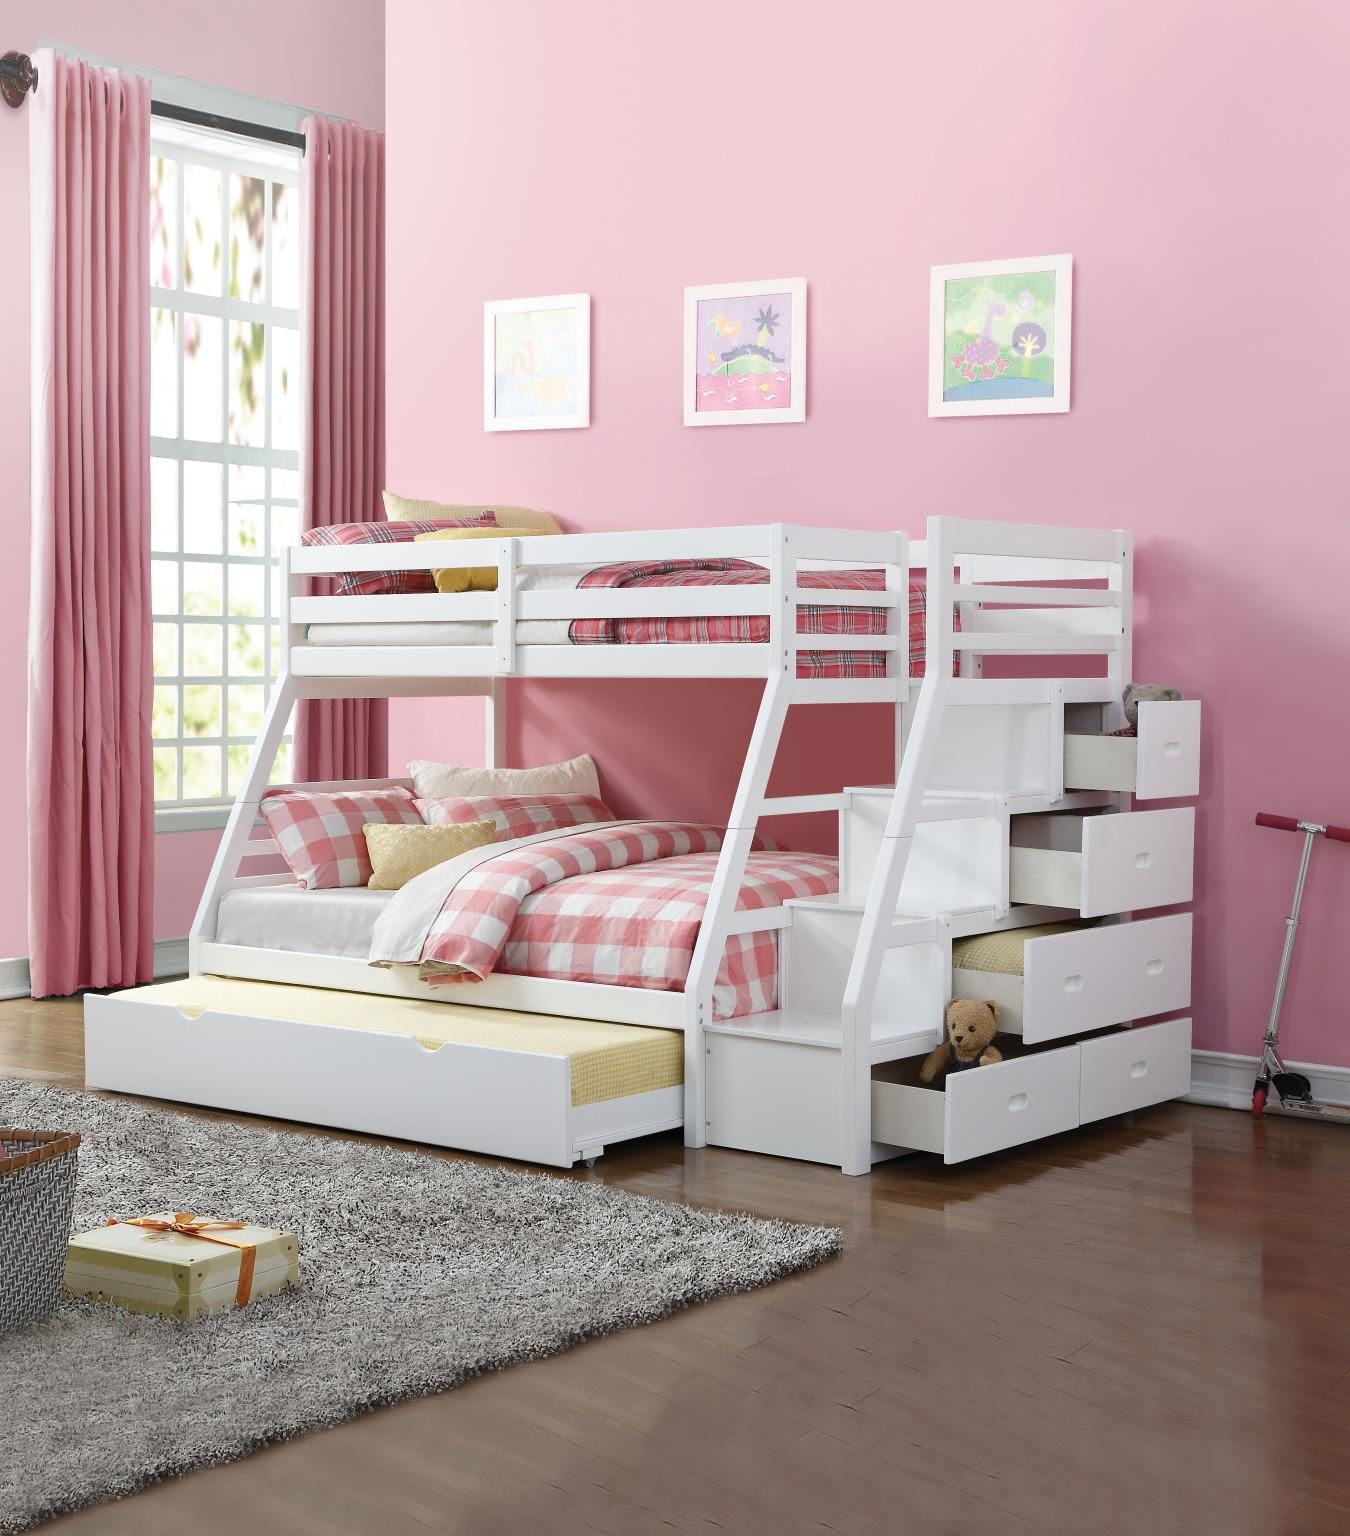 w Trundle and Storage Ladder